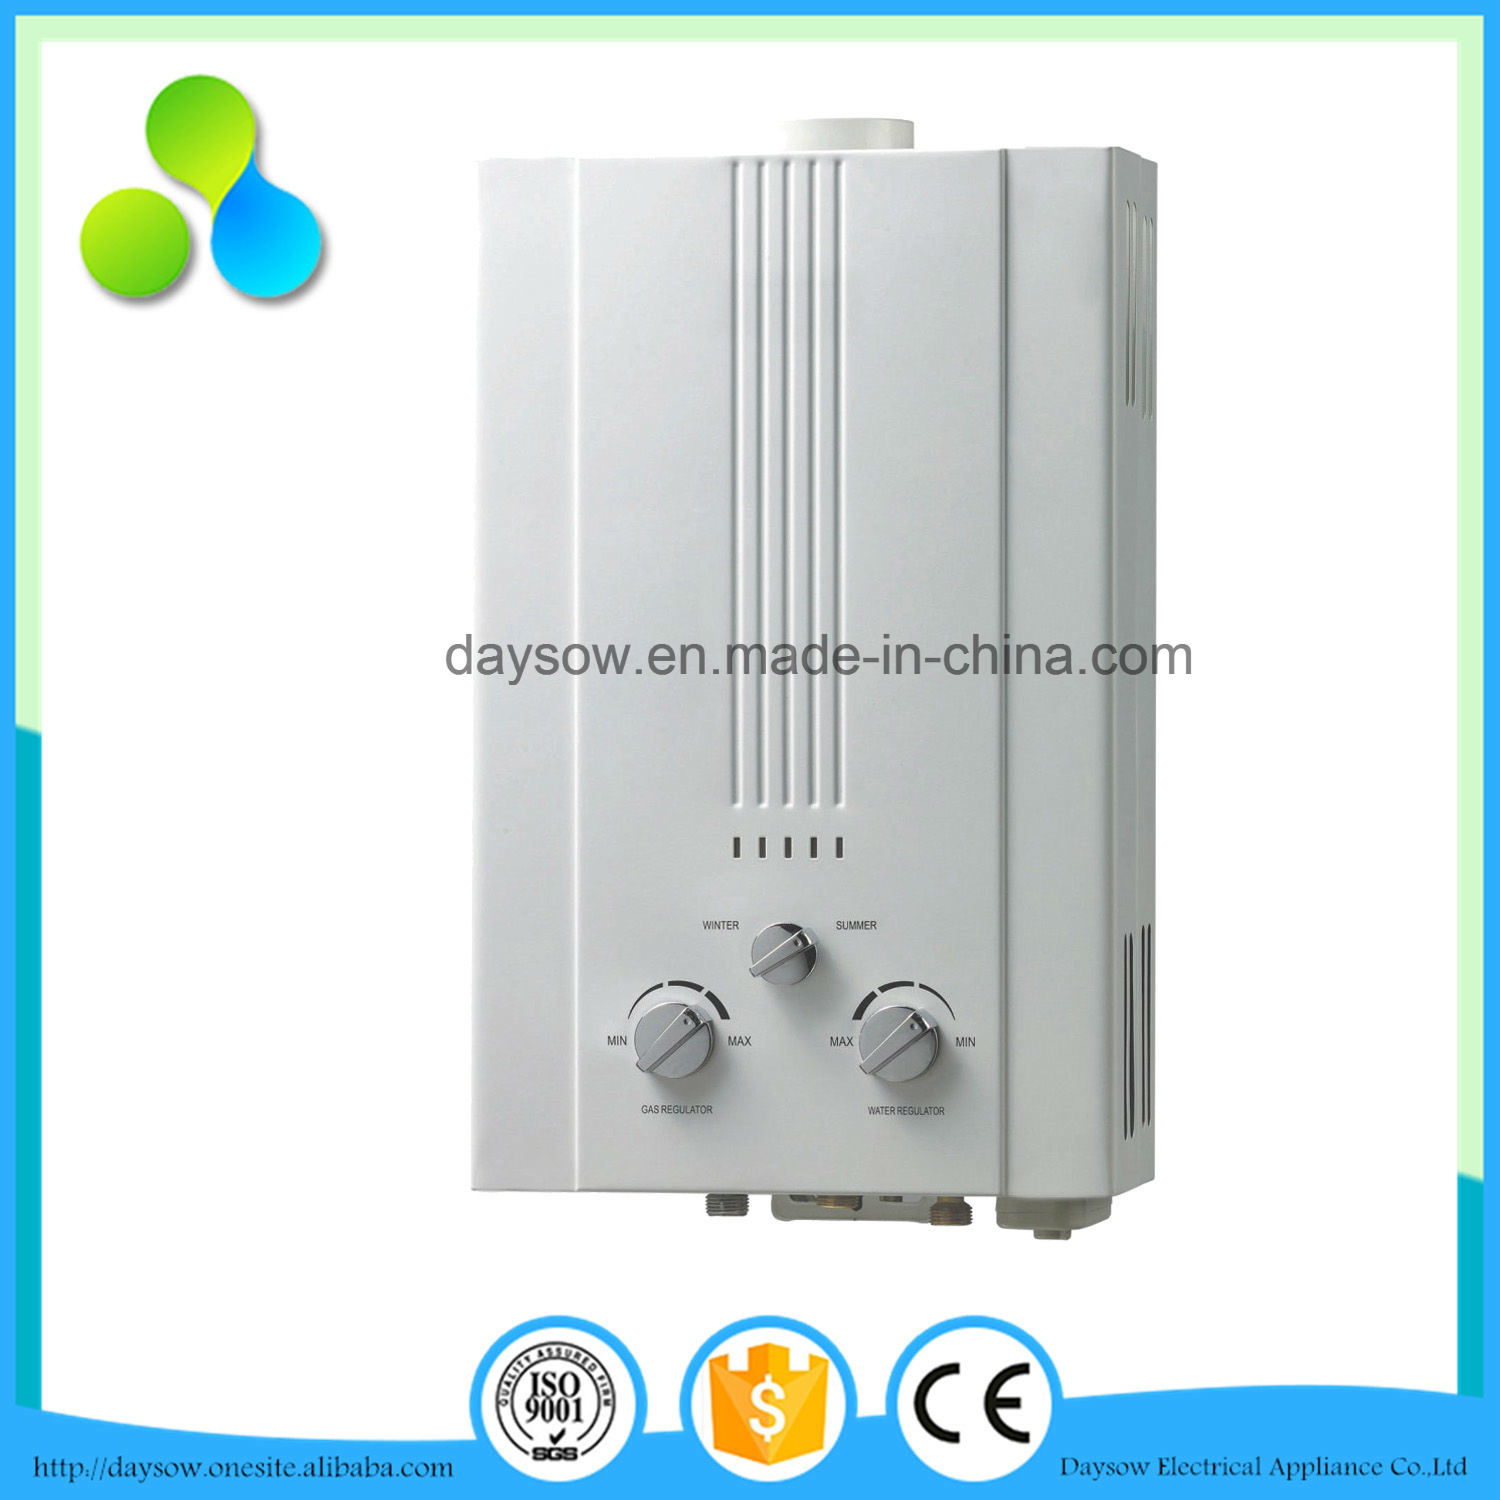 2016 New Model Instant Gas Water Heater 16 LTR Gas Water Heater